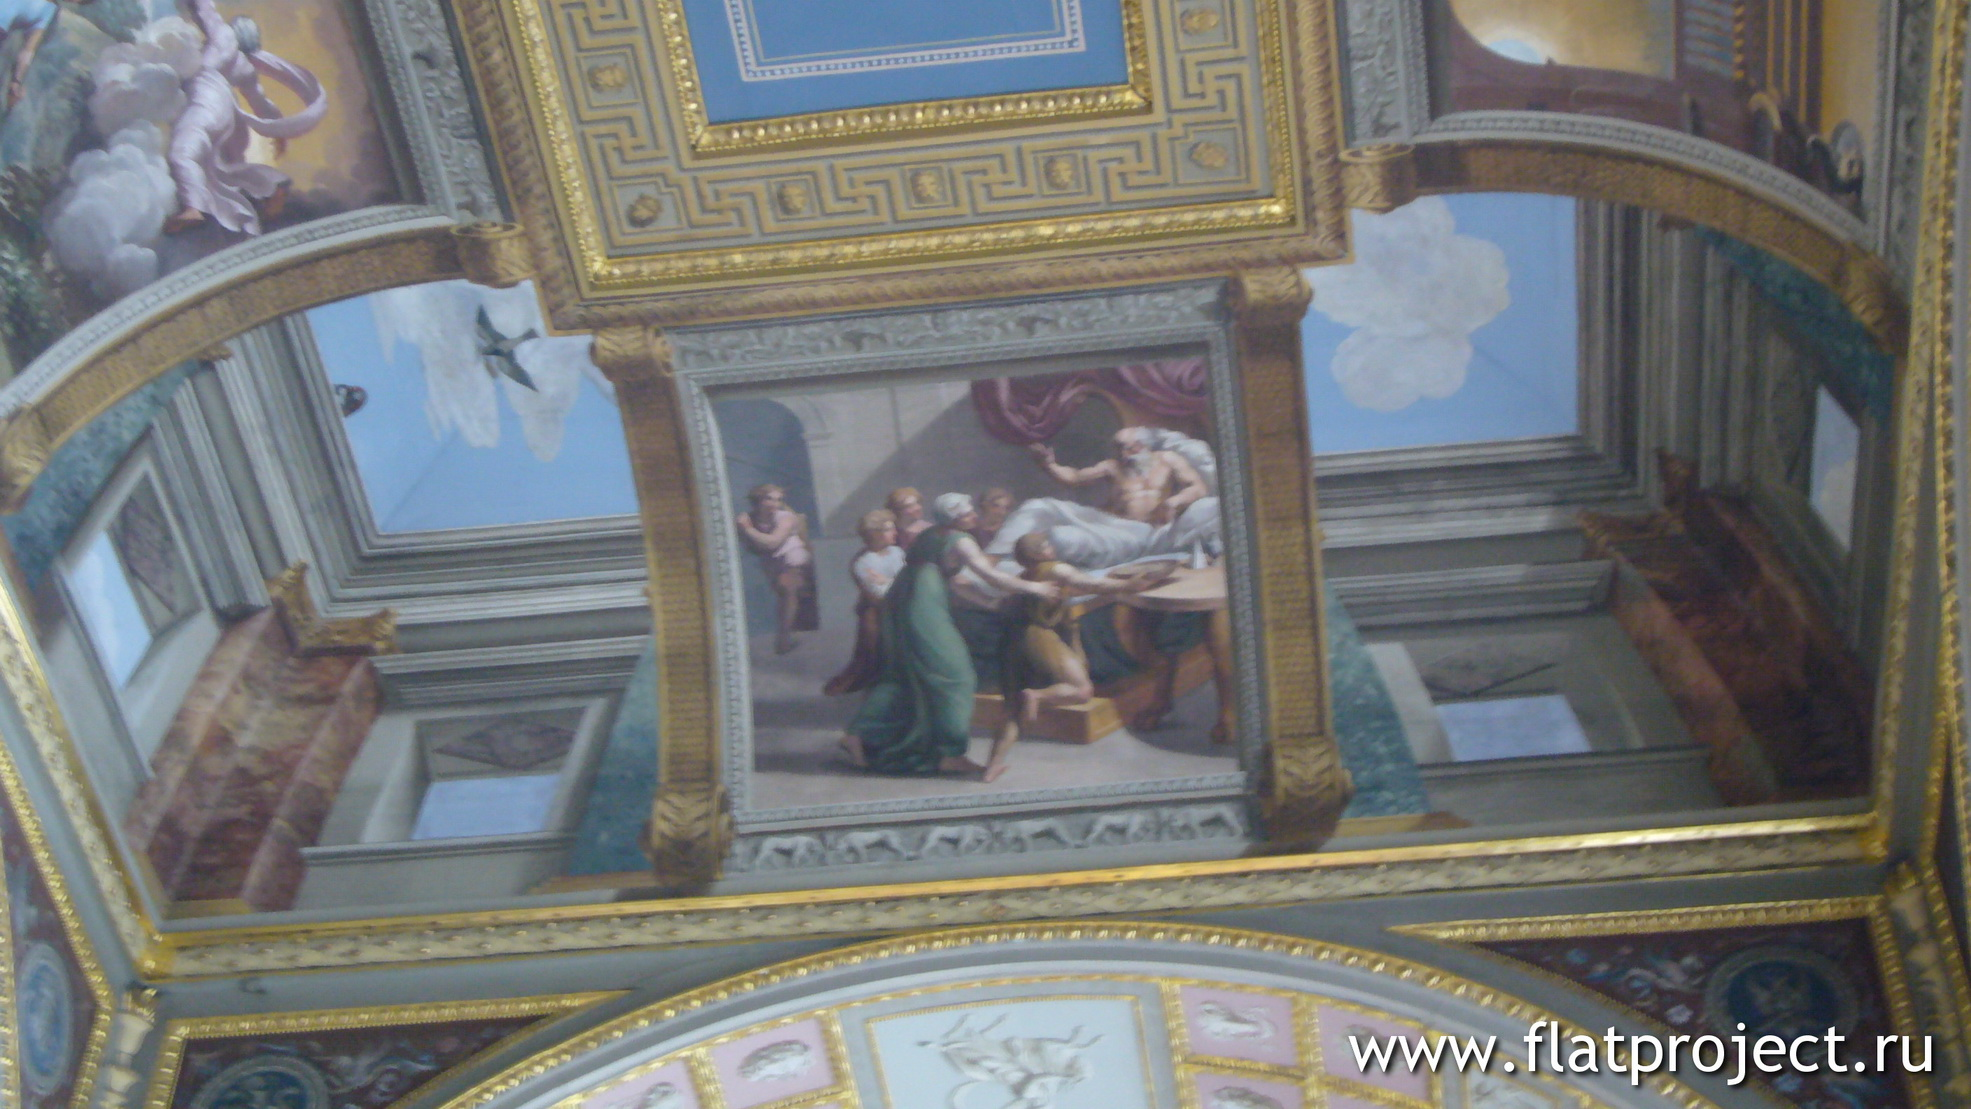 The State Hermitage museum interiors – photo 128